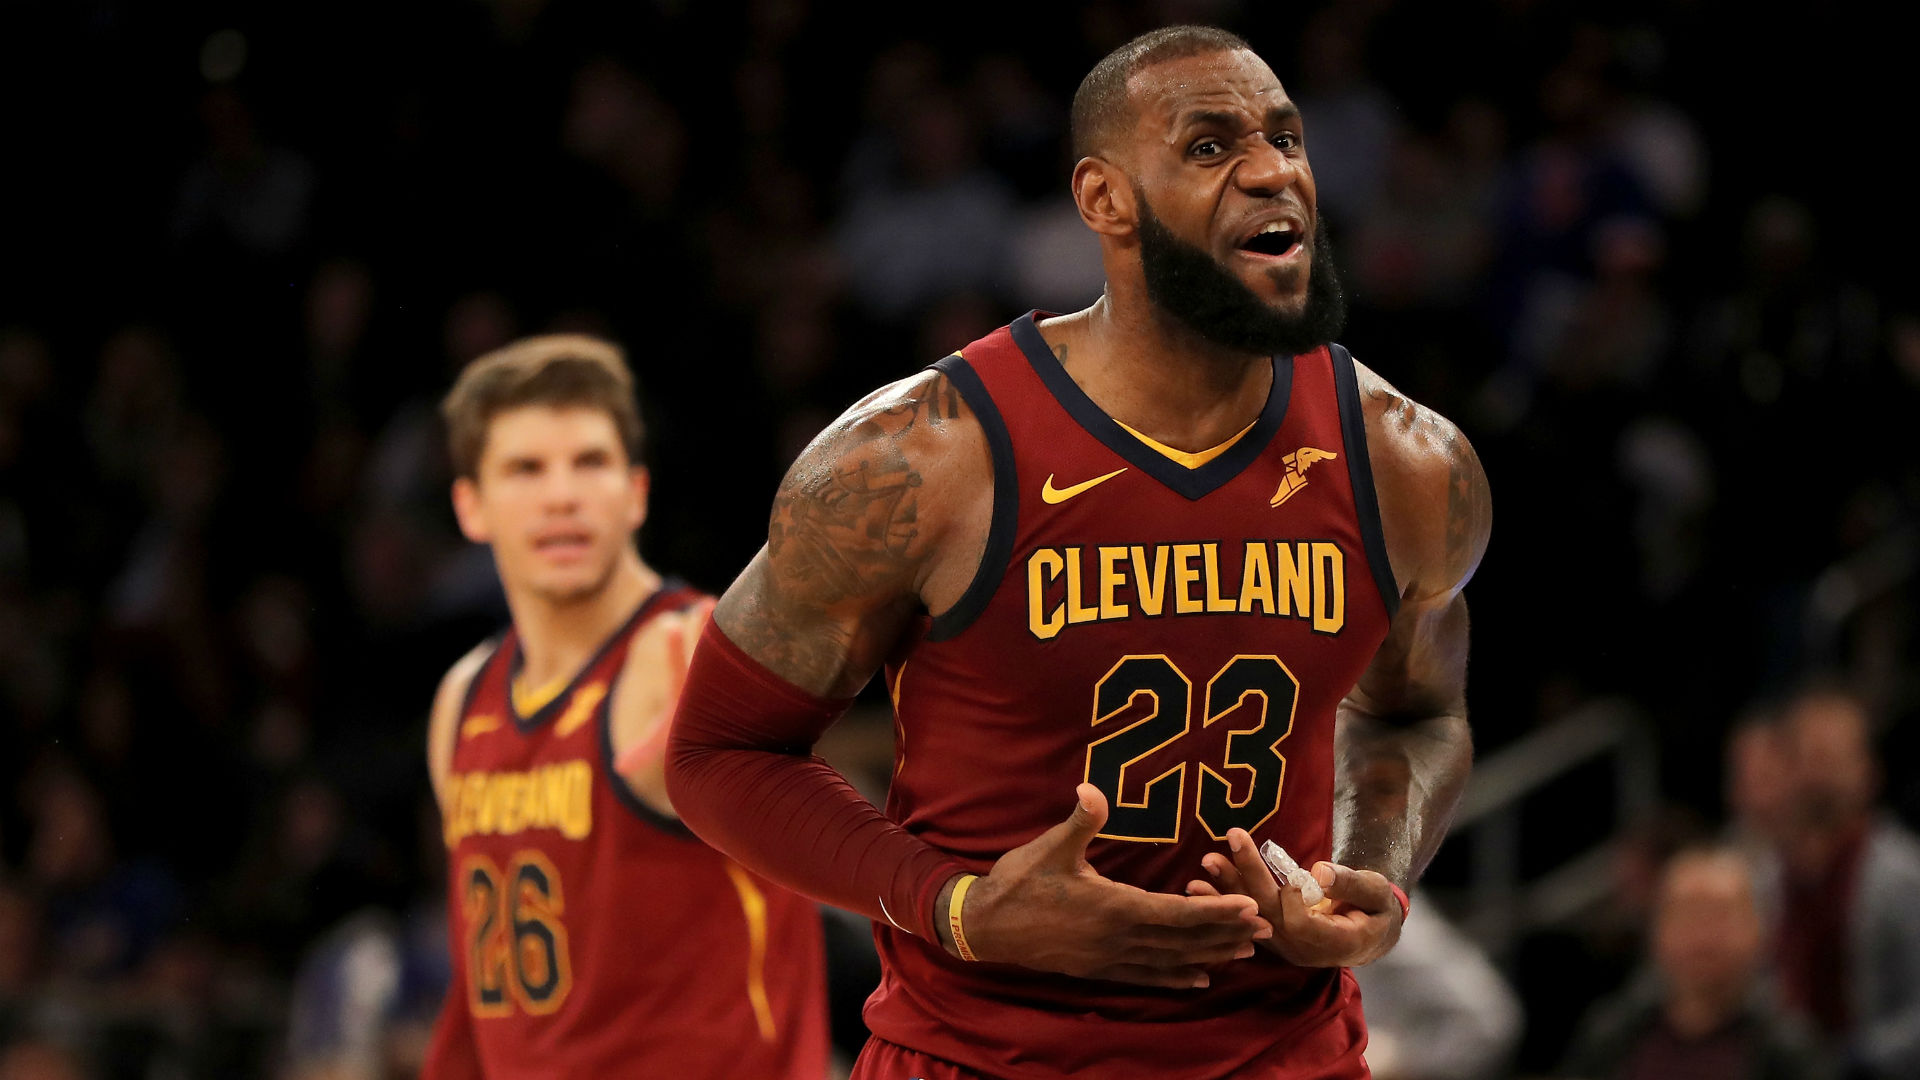 Lebron-james-cavaliers-vs-new-york-knicks-13112017_9zy2i2pl8zw818dl1gx2ph1br